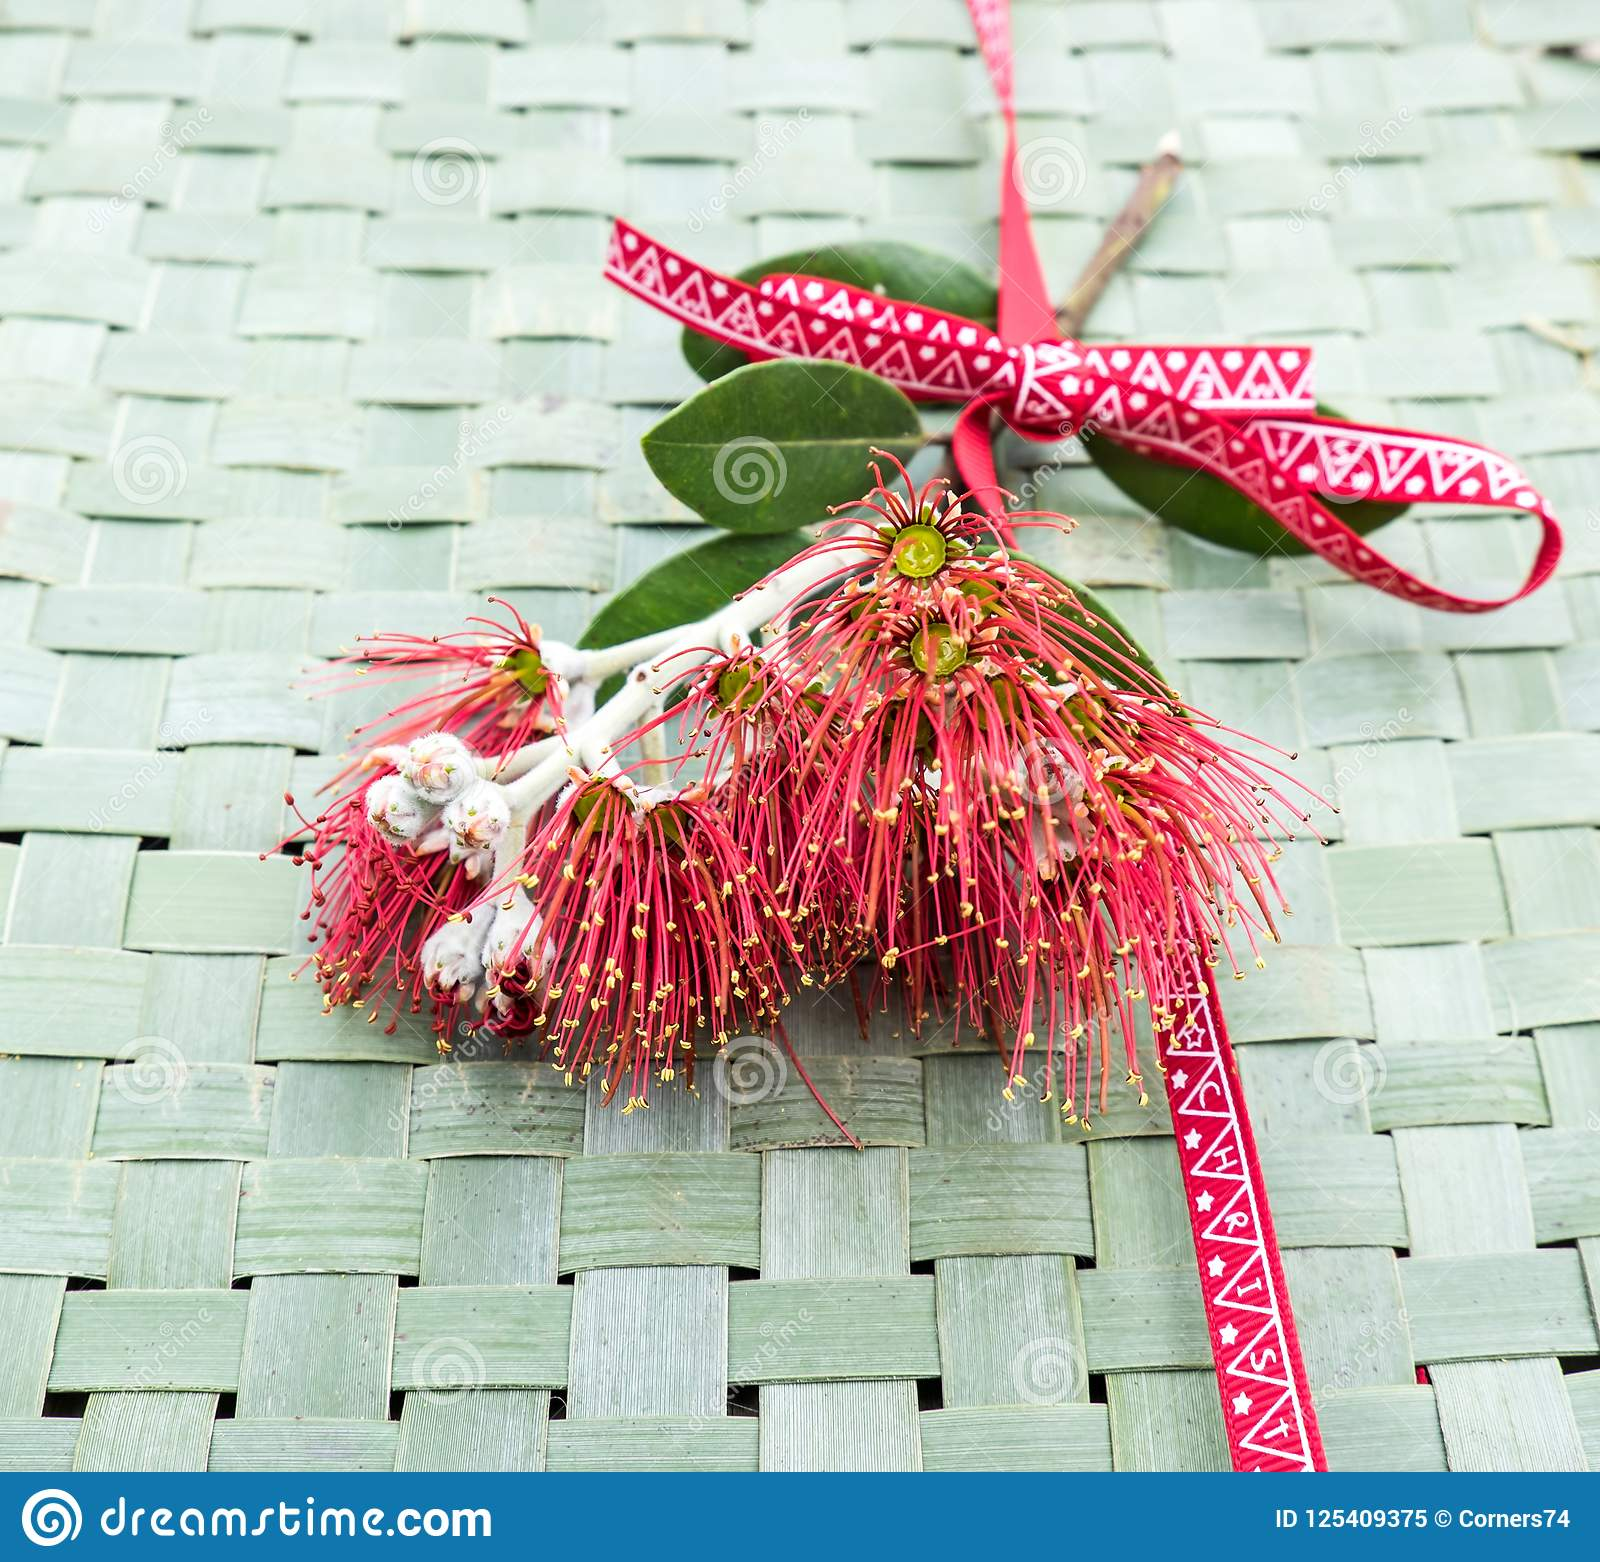 New Zealand Christmas Tree.New Zealand Christmas Tree Or Pohutukawa Flower On Woven